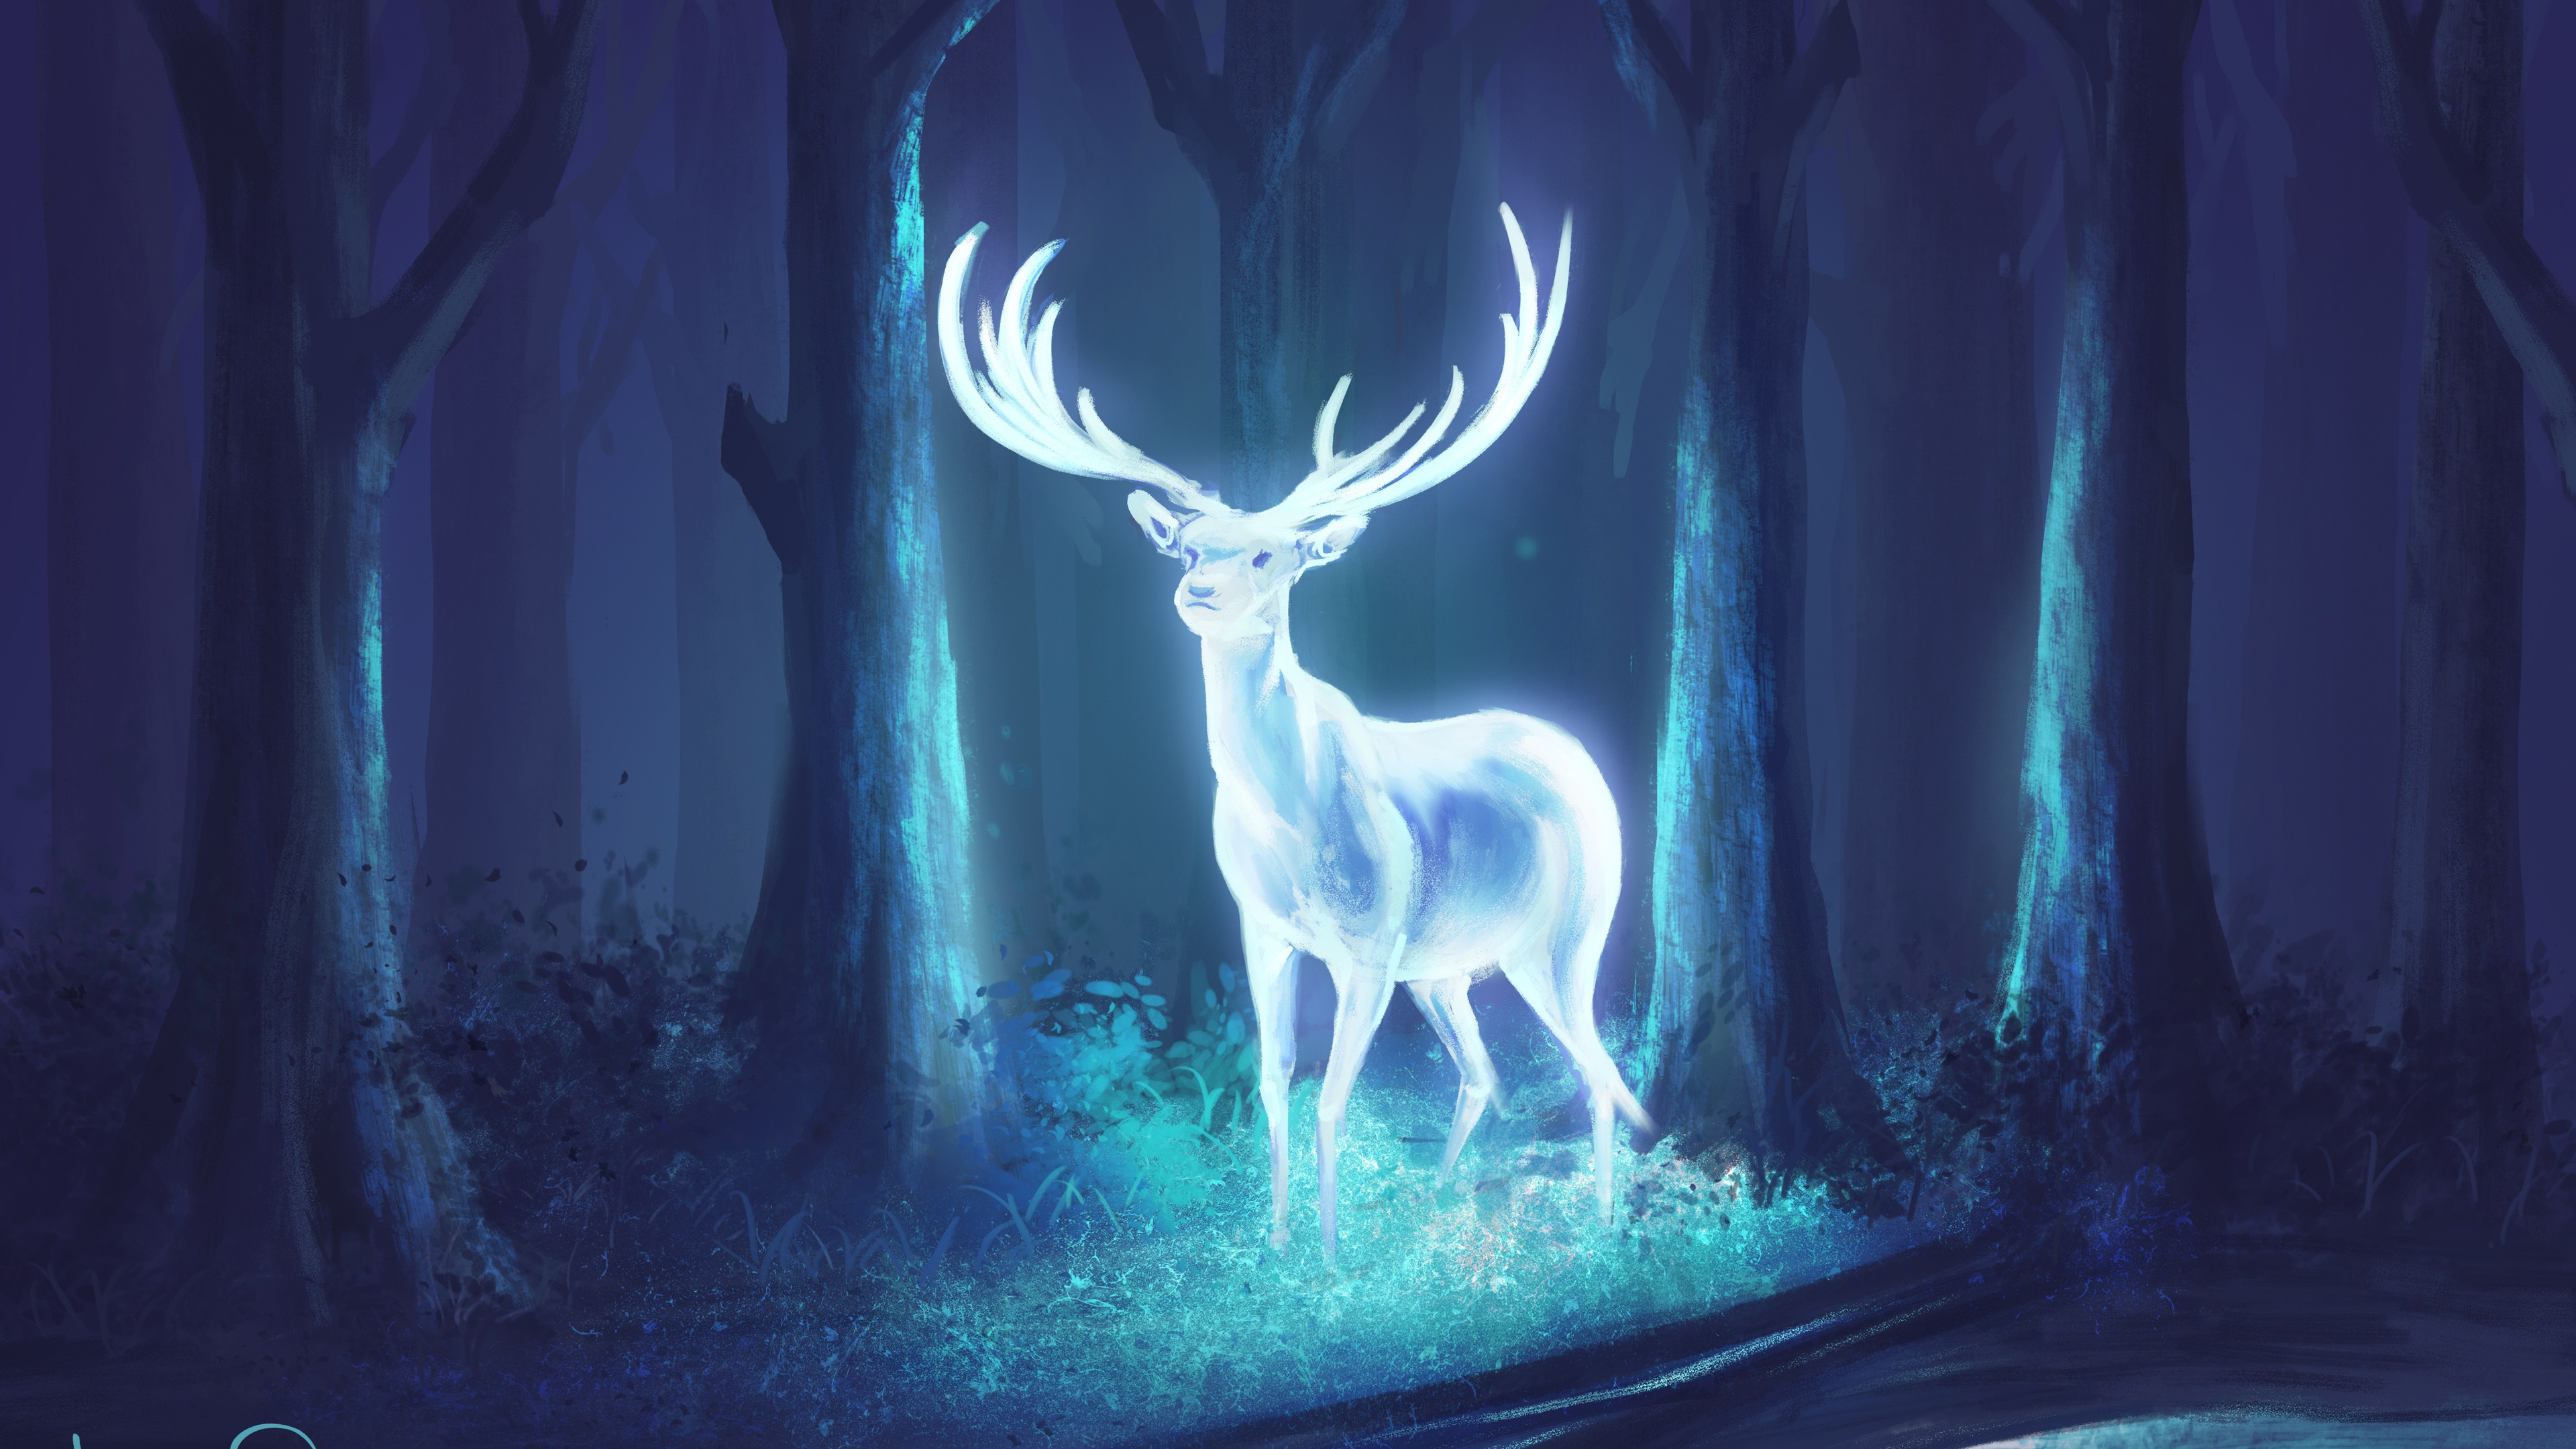 Wallpaper Bright Deer In The Forest Art Drawing 3840x2160 Uhd 4k Picture Image